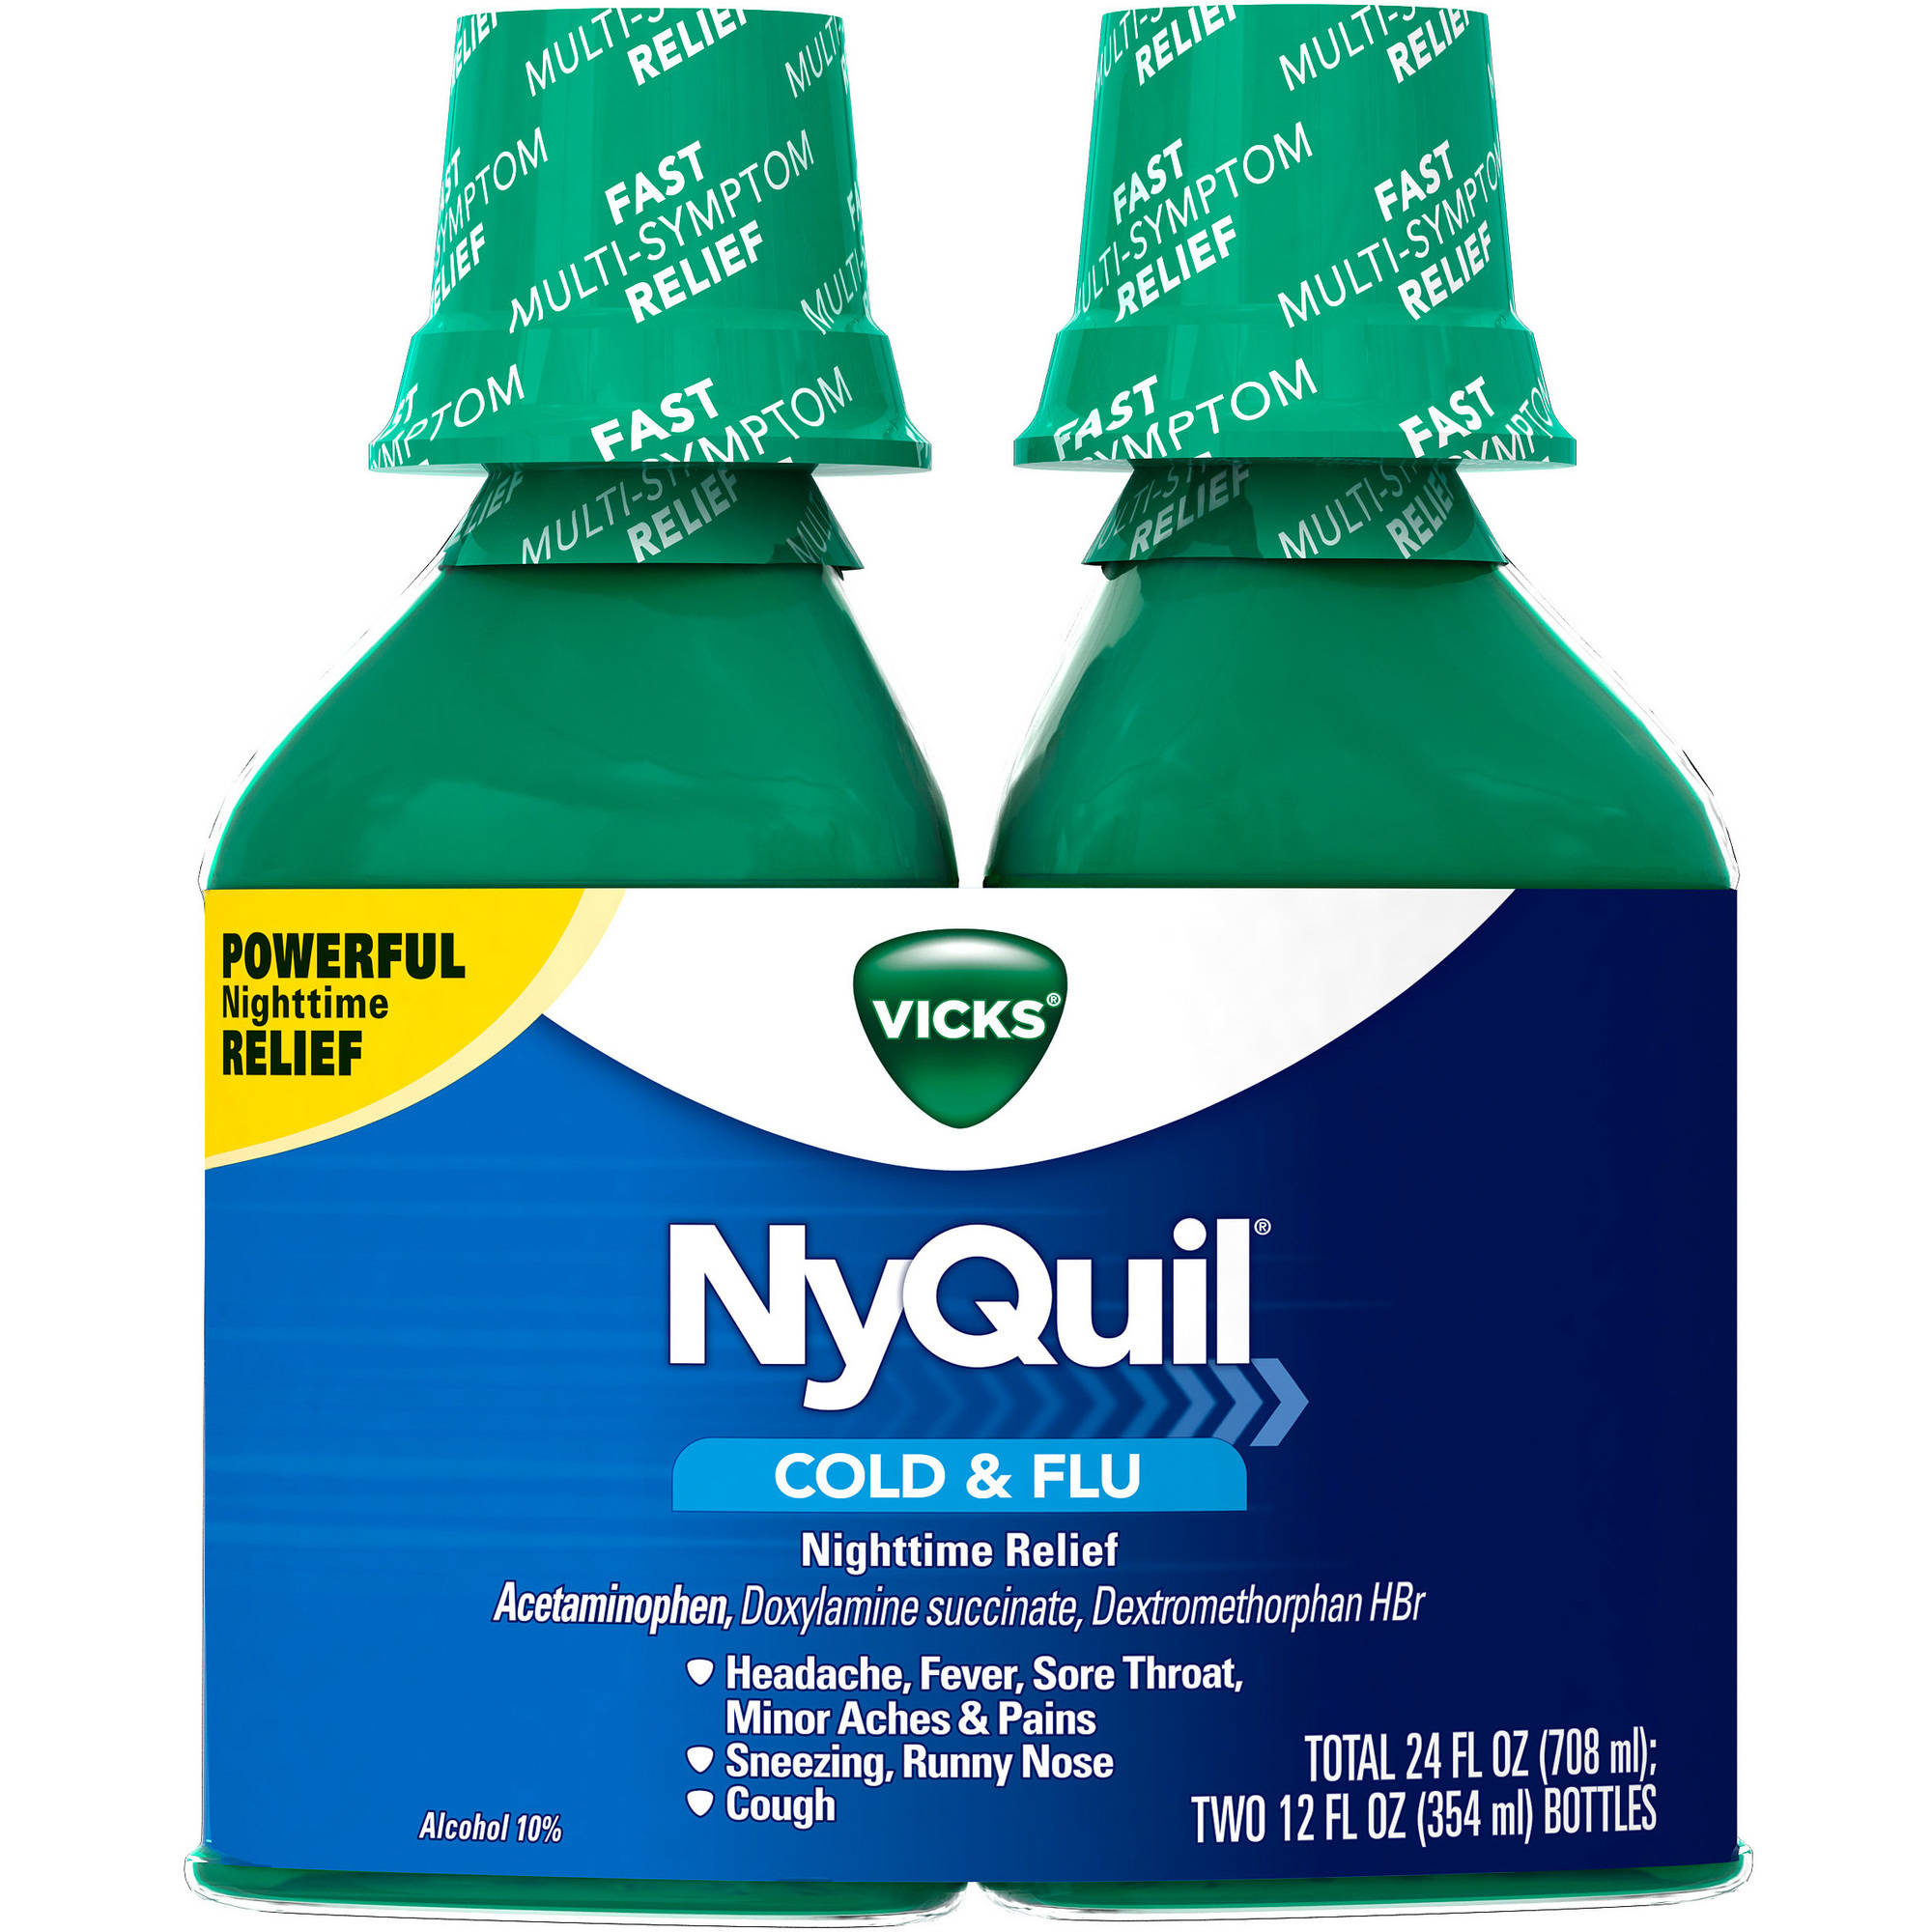 Vicks NyQuil Cold & Flu Nighttime Relief Original Flavor Liquid Cold Medicine, 12 fl oz, (Pack of 2)